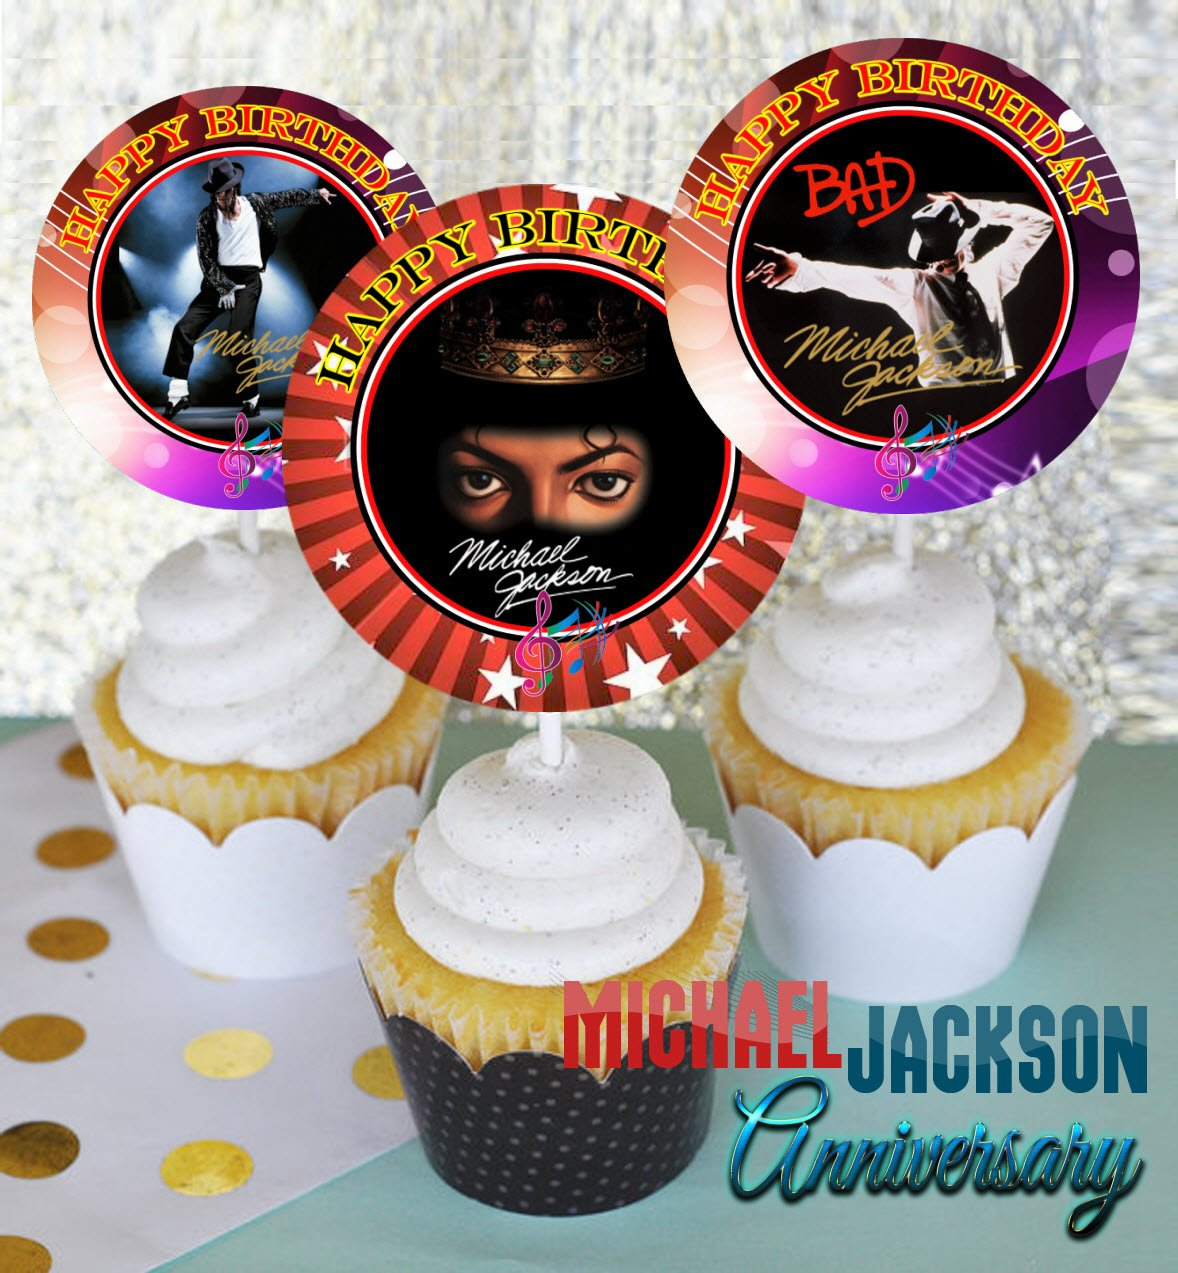 12 MICHAEL JACKSON ANNIVERSARY Birthday Inspired Party Picks, Cupcake Picks, Cupcake Toppers #1